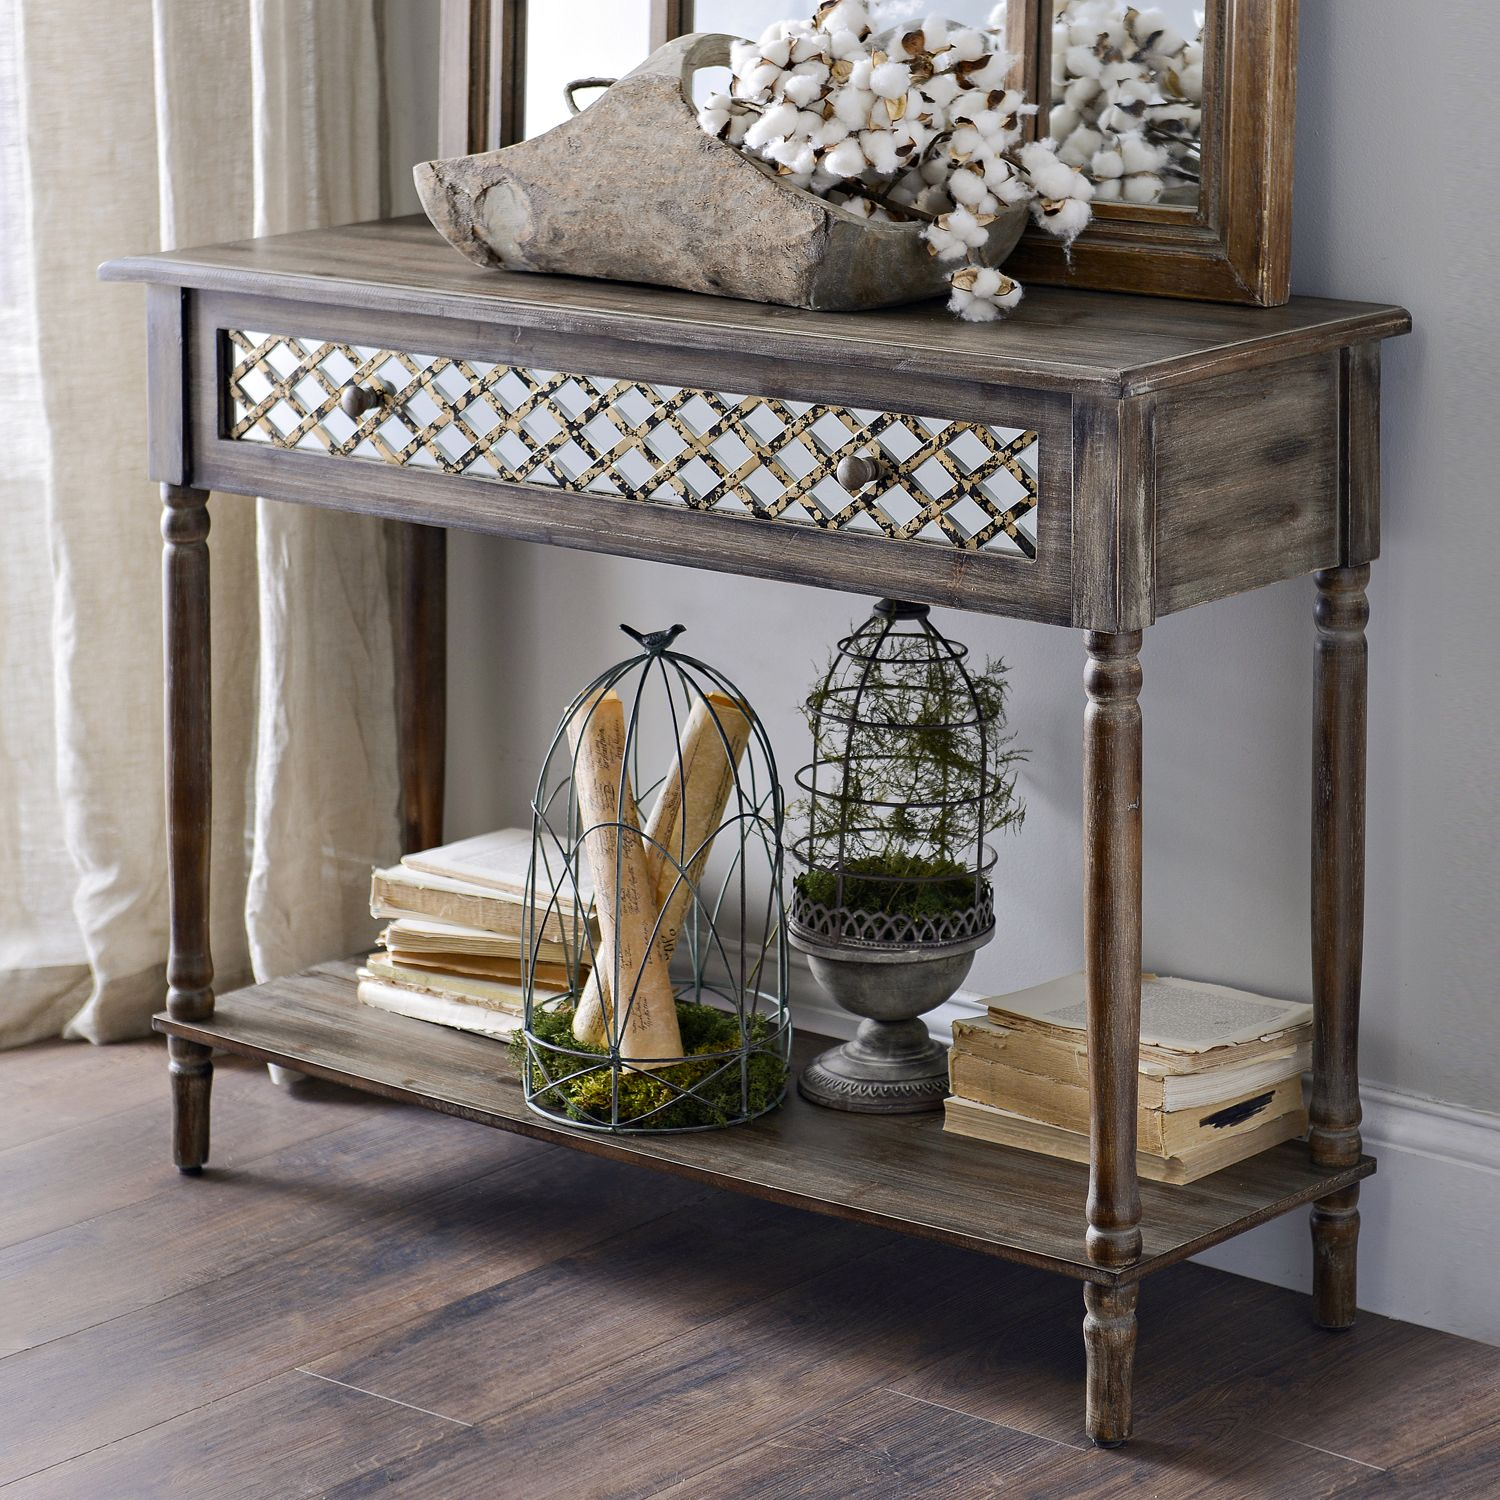 Fantastic Foyer Ideas To Make The Perfect First Impression: Product Details Distressed Rustic Mirrored Console Table